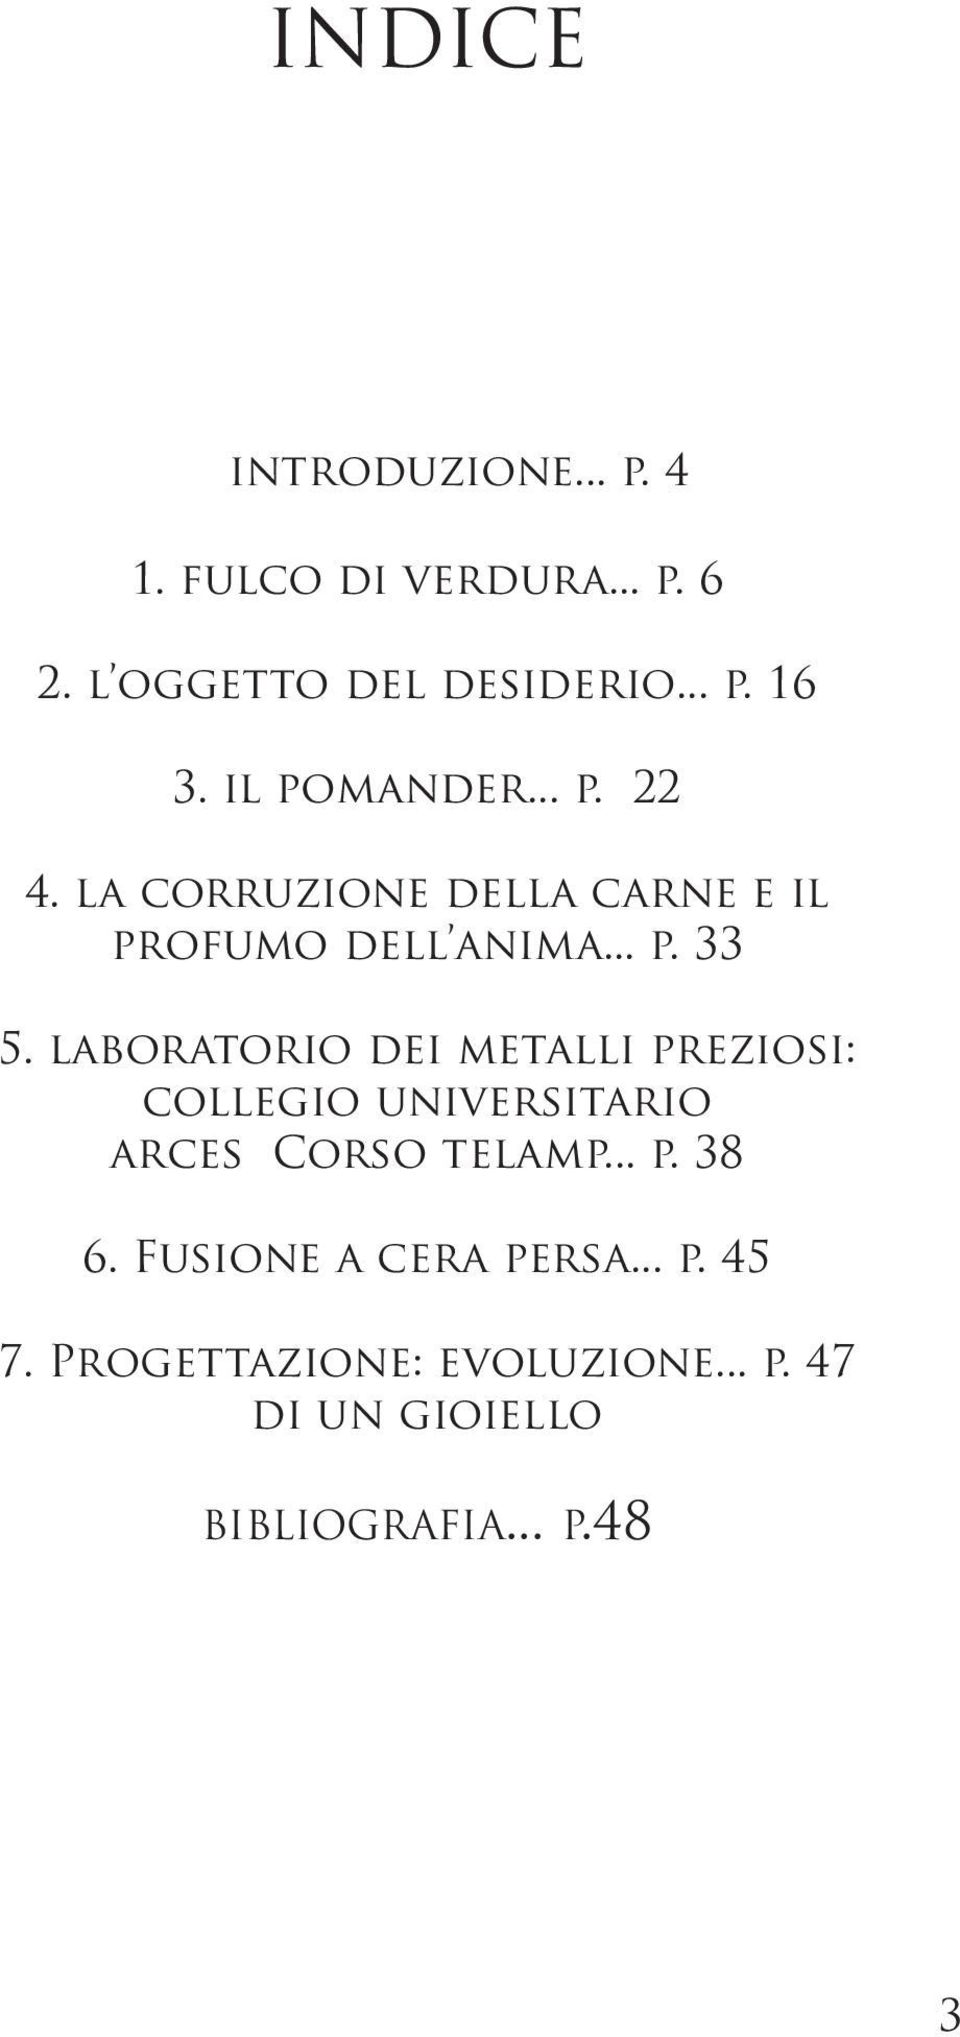 laboratorio dei metalli preziosi: collegio universitario arces Corso telamp... p. 38 6.